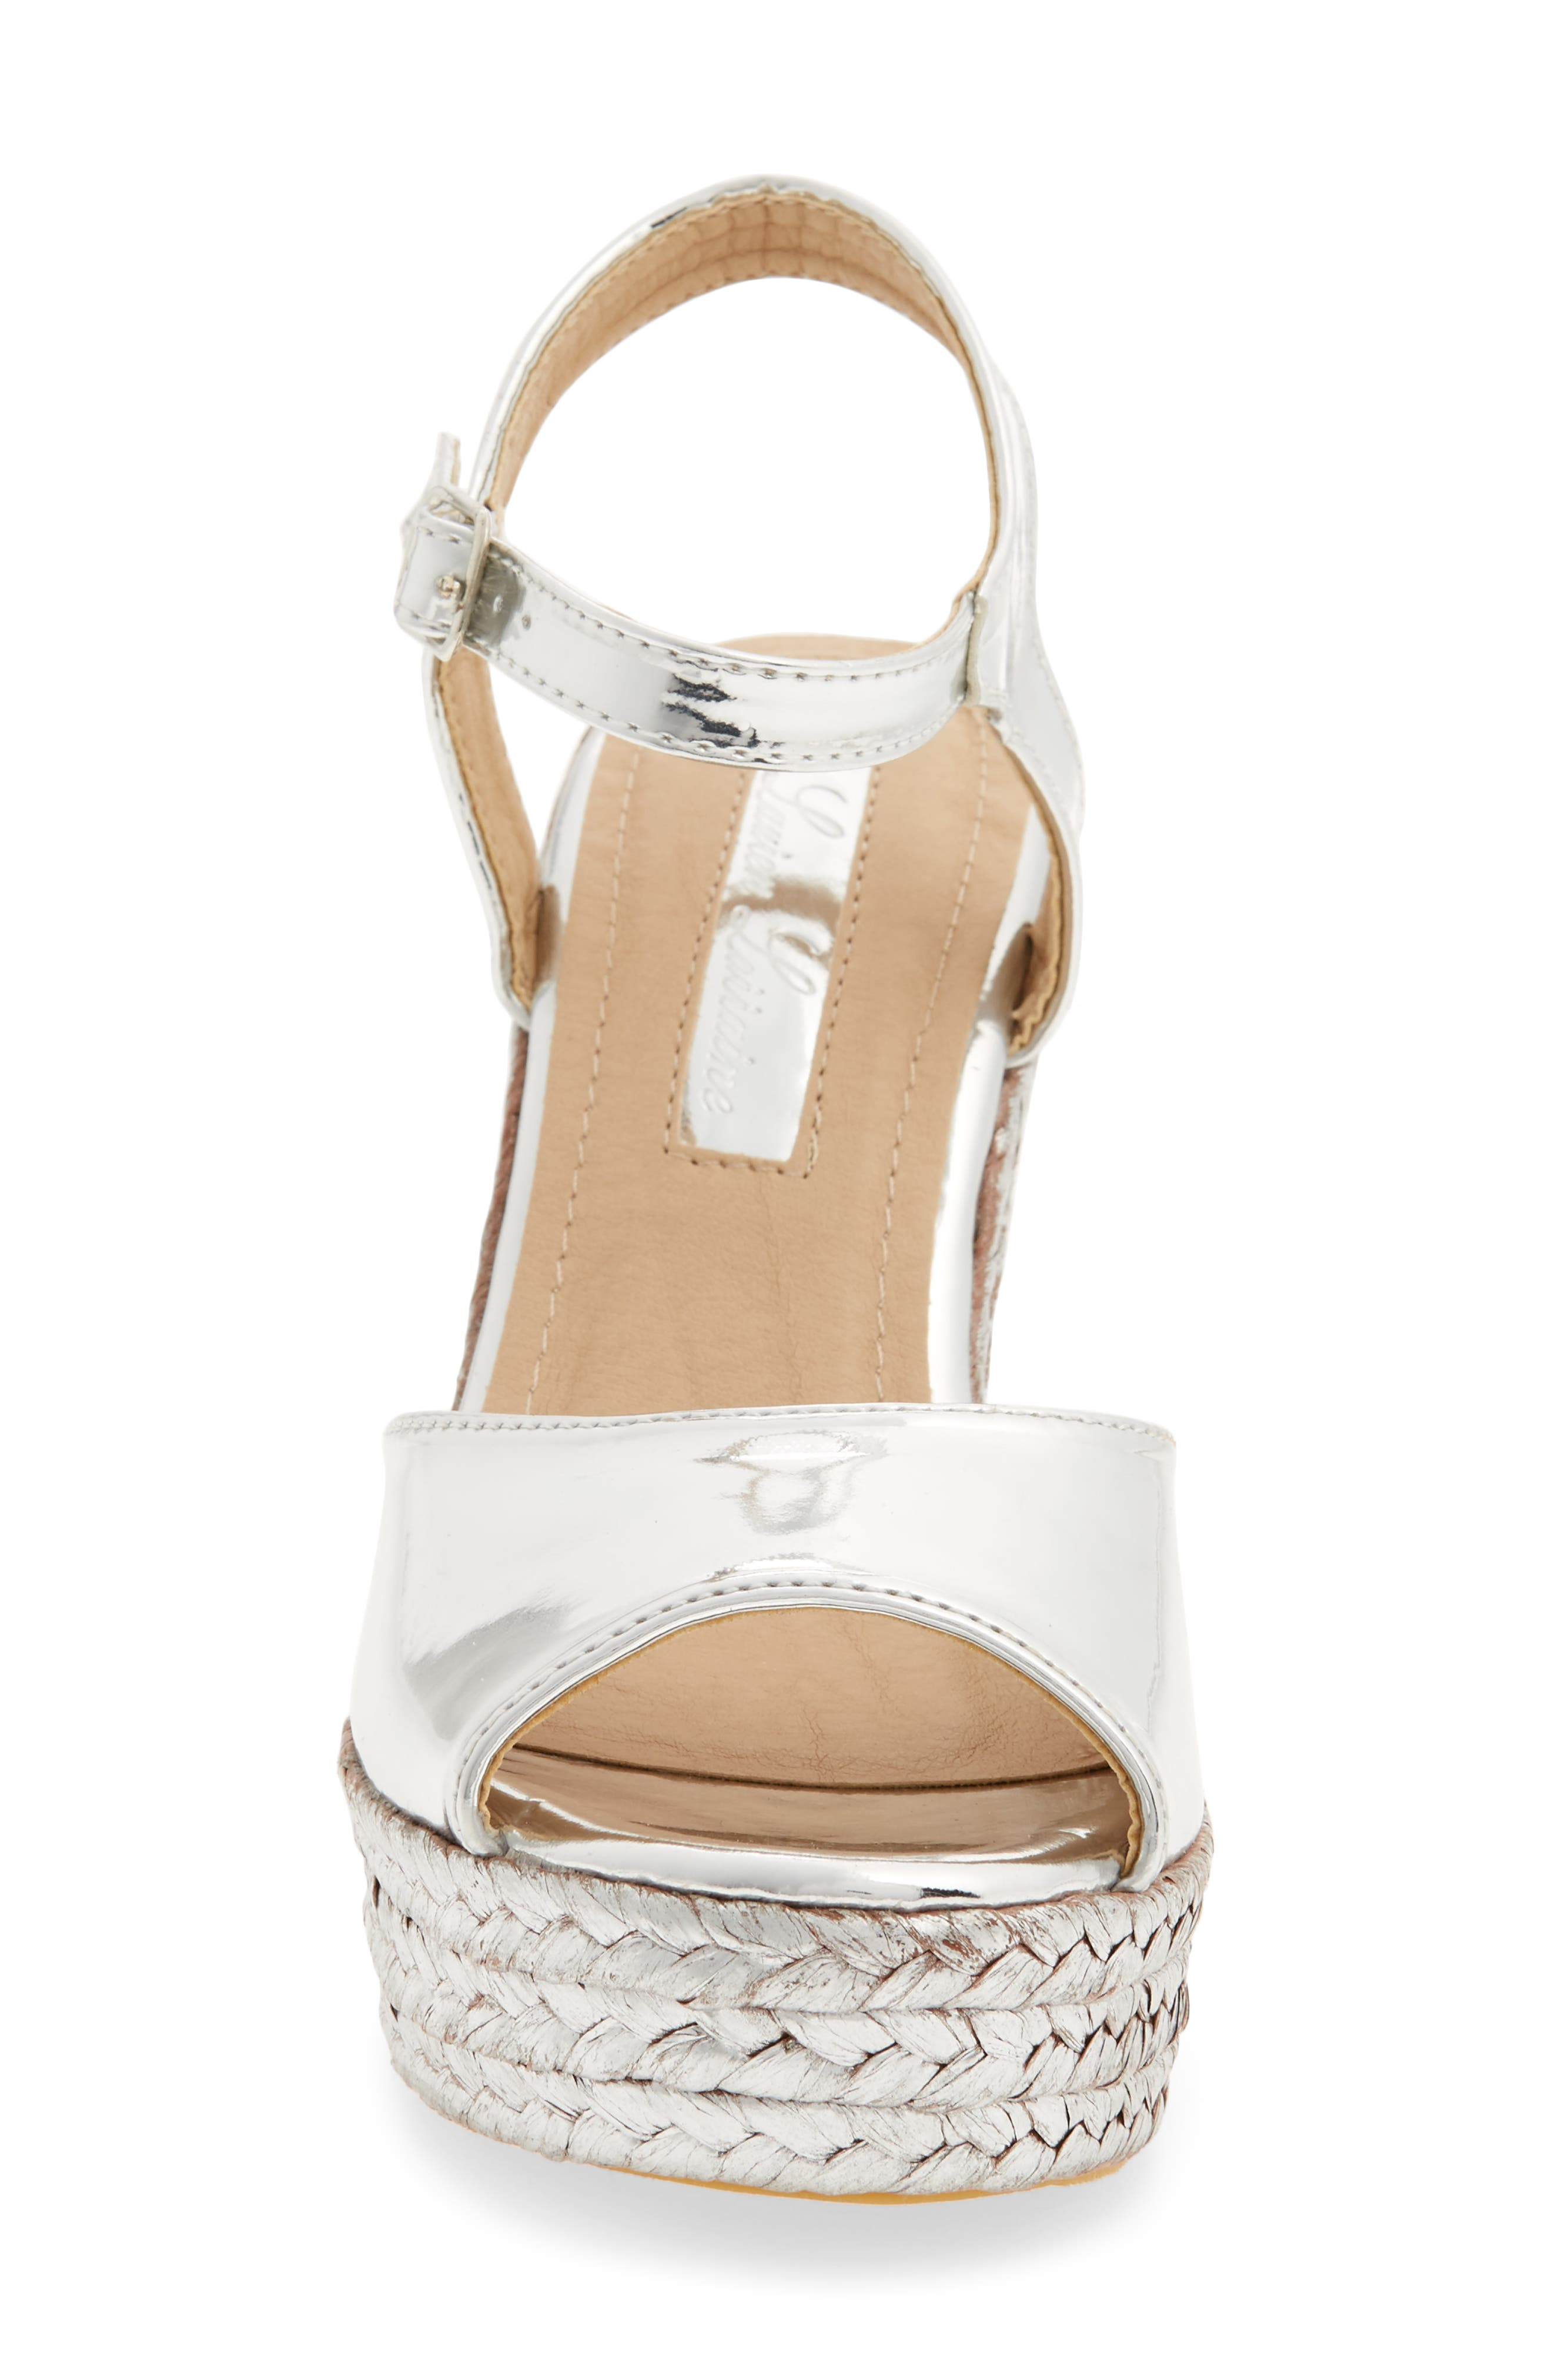 Lina Platform Wedge Sandal,                             Alternate thumbnail 4, color,                             SILVER